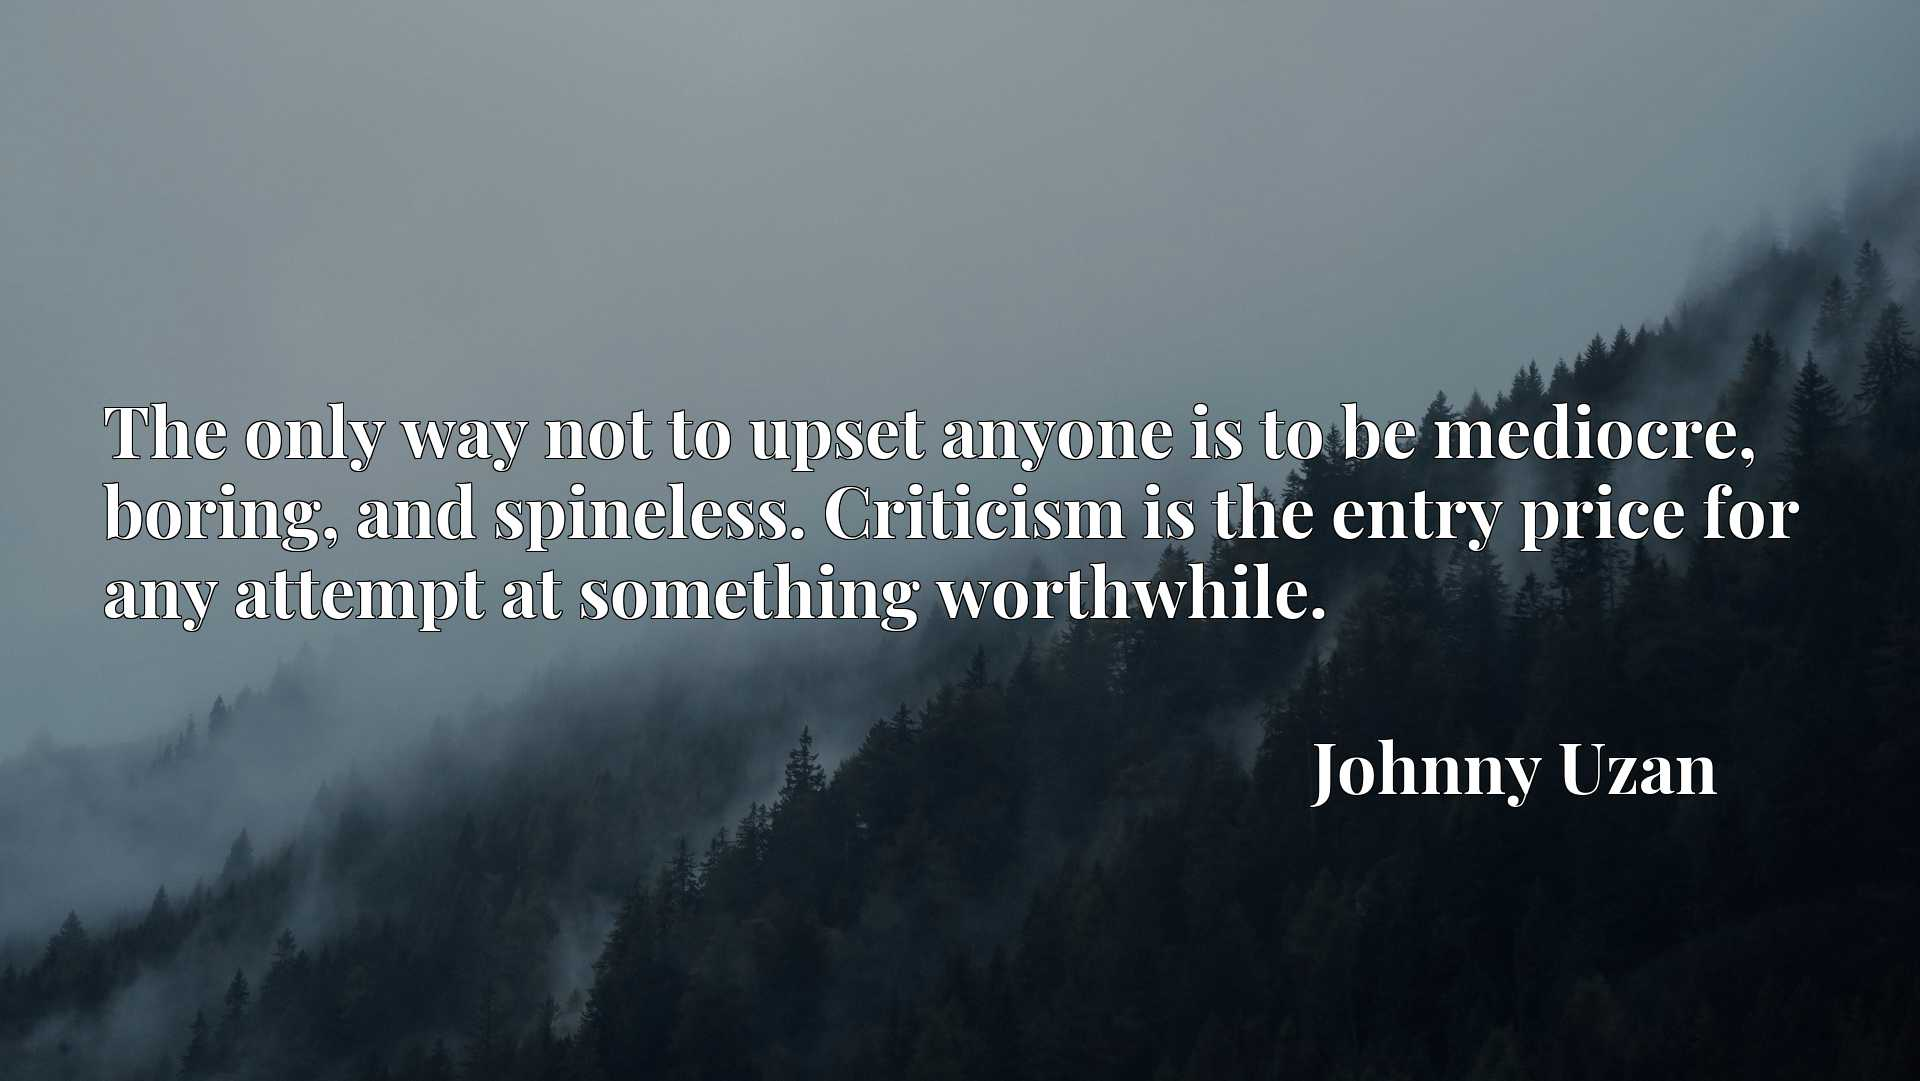 The only way not to upset anyone is to be mediocre, boring, and spineless. Criticism is the entry price for any attempt at something worthwhile.